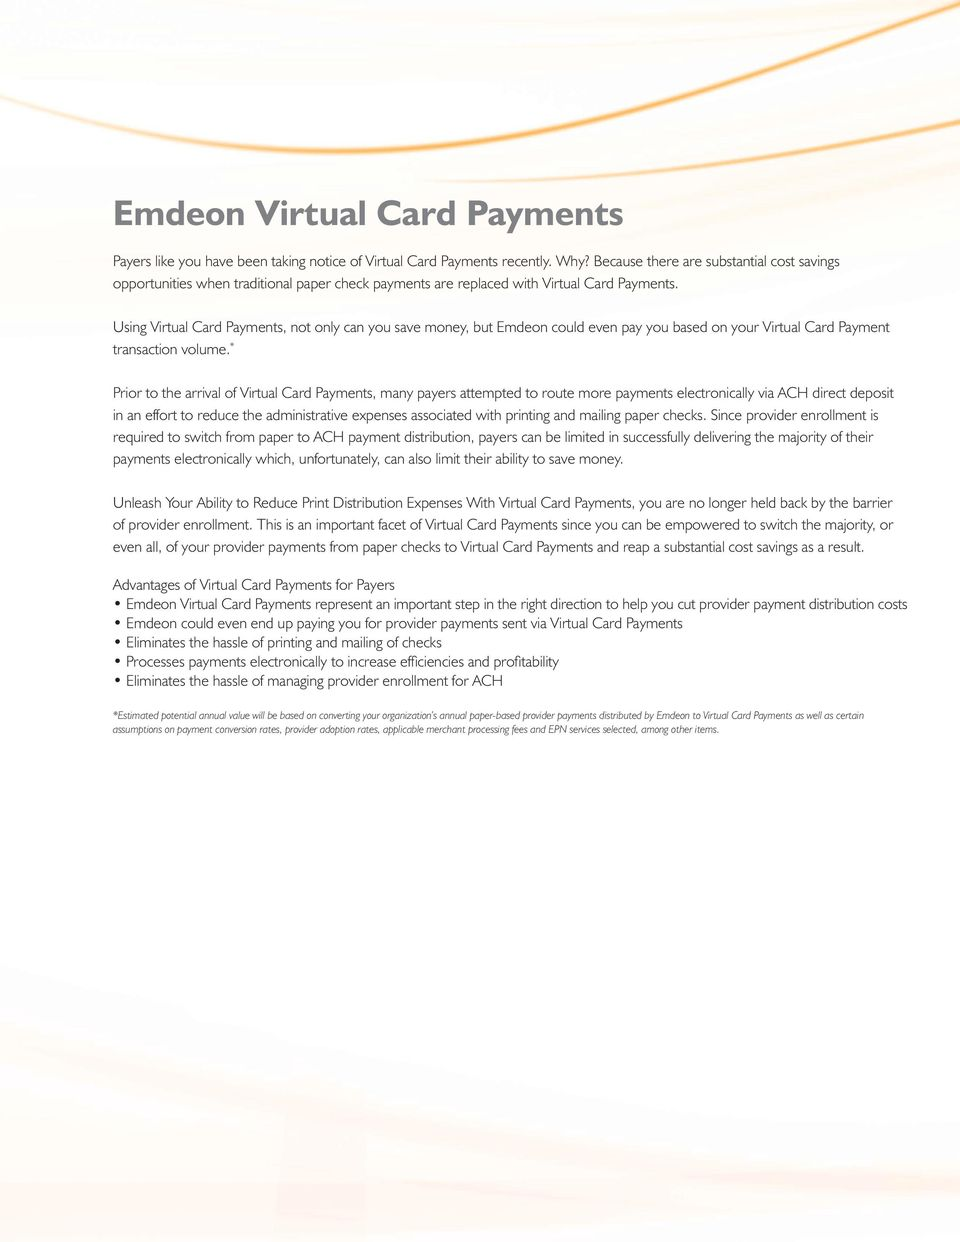 Using Virtual Card Payments, not only can you save money, but Emdeon could even pay you based on your Virtual Card Payment transaction volume.